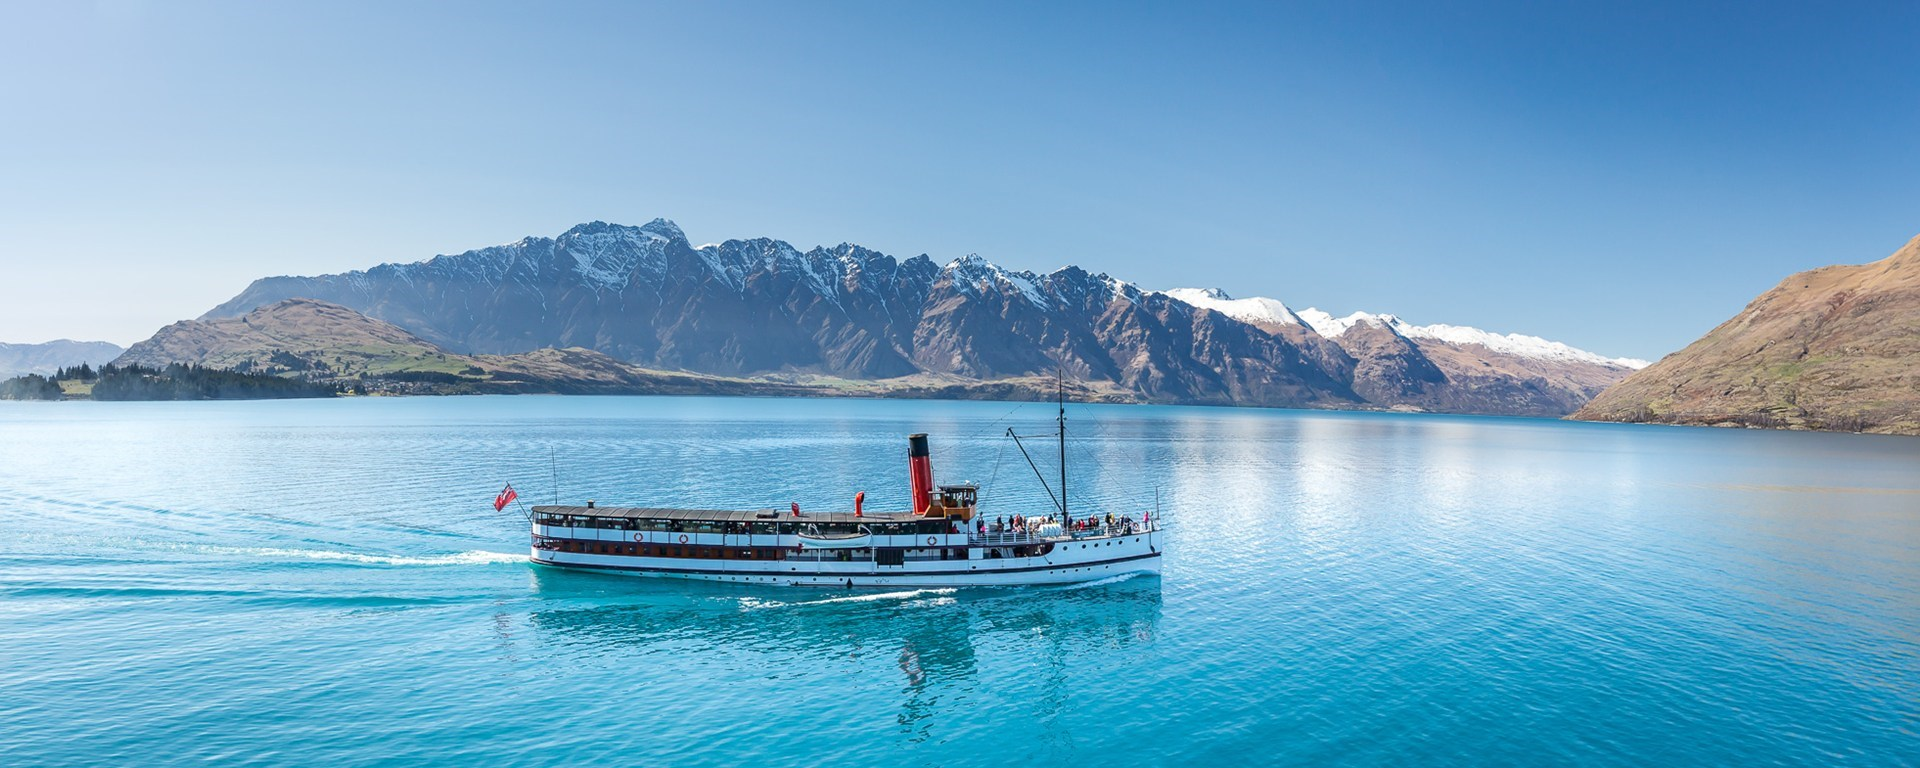 TSS Earnslaw Queenstown Cardrona